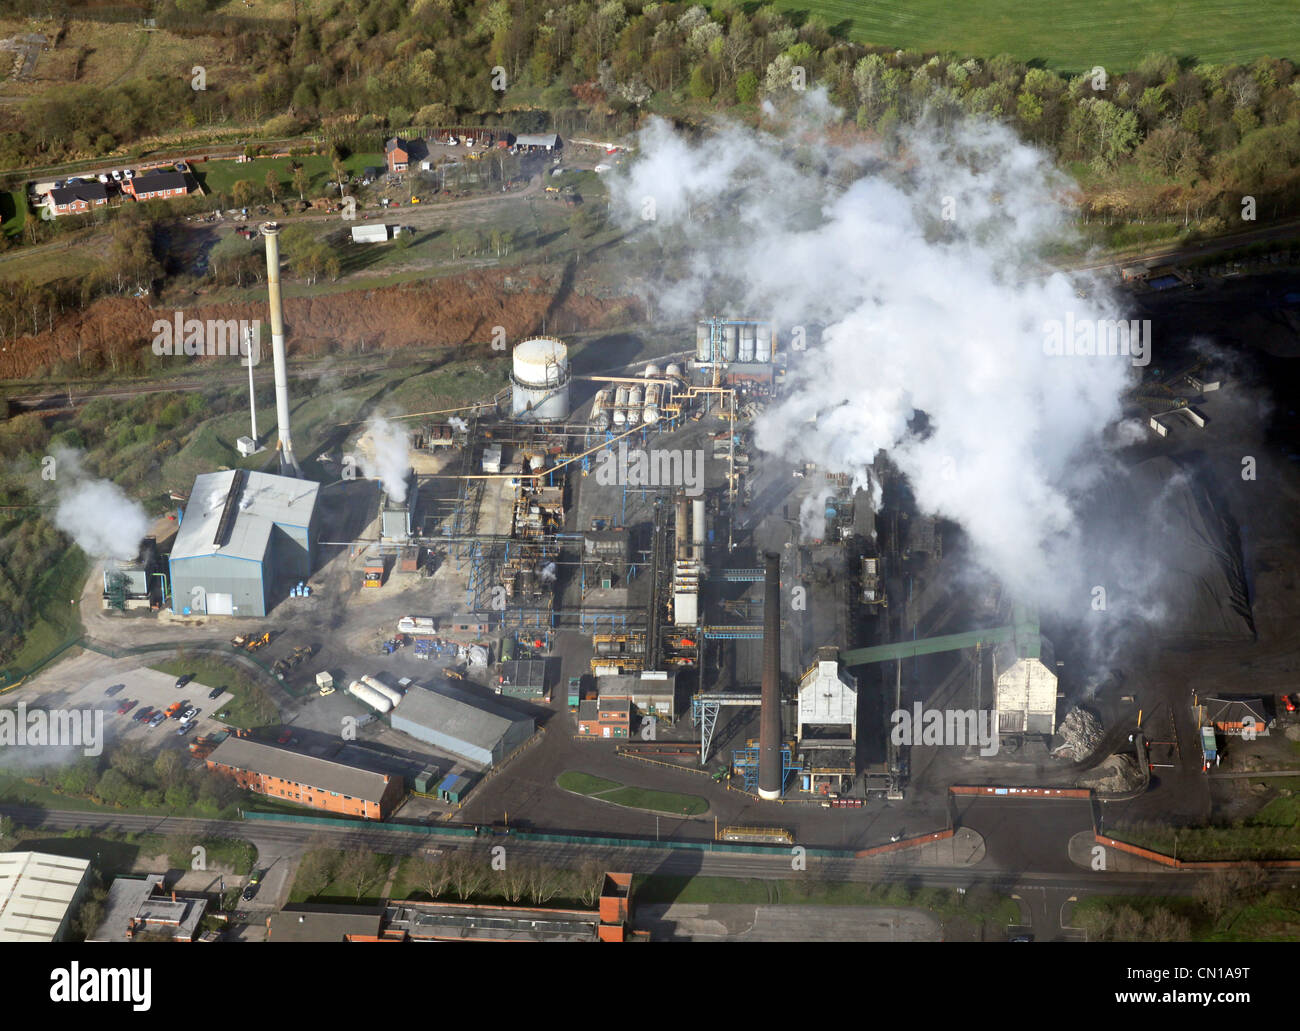 Aerial view of factory pollution - Stock Image